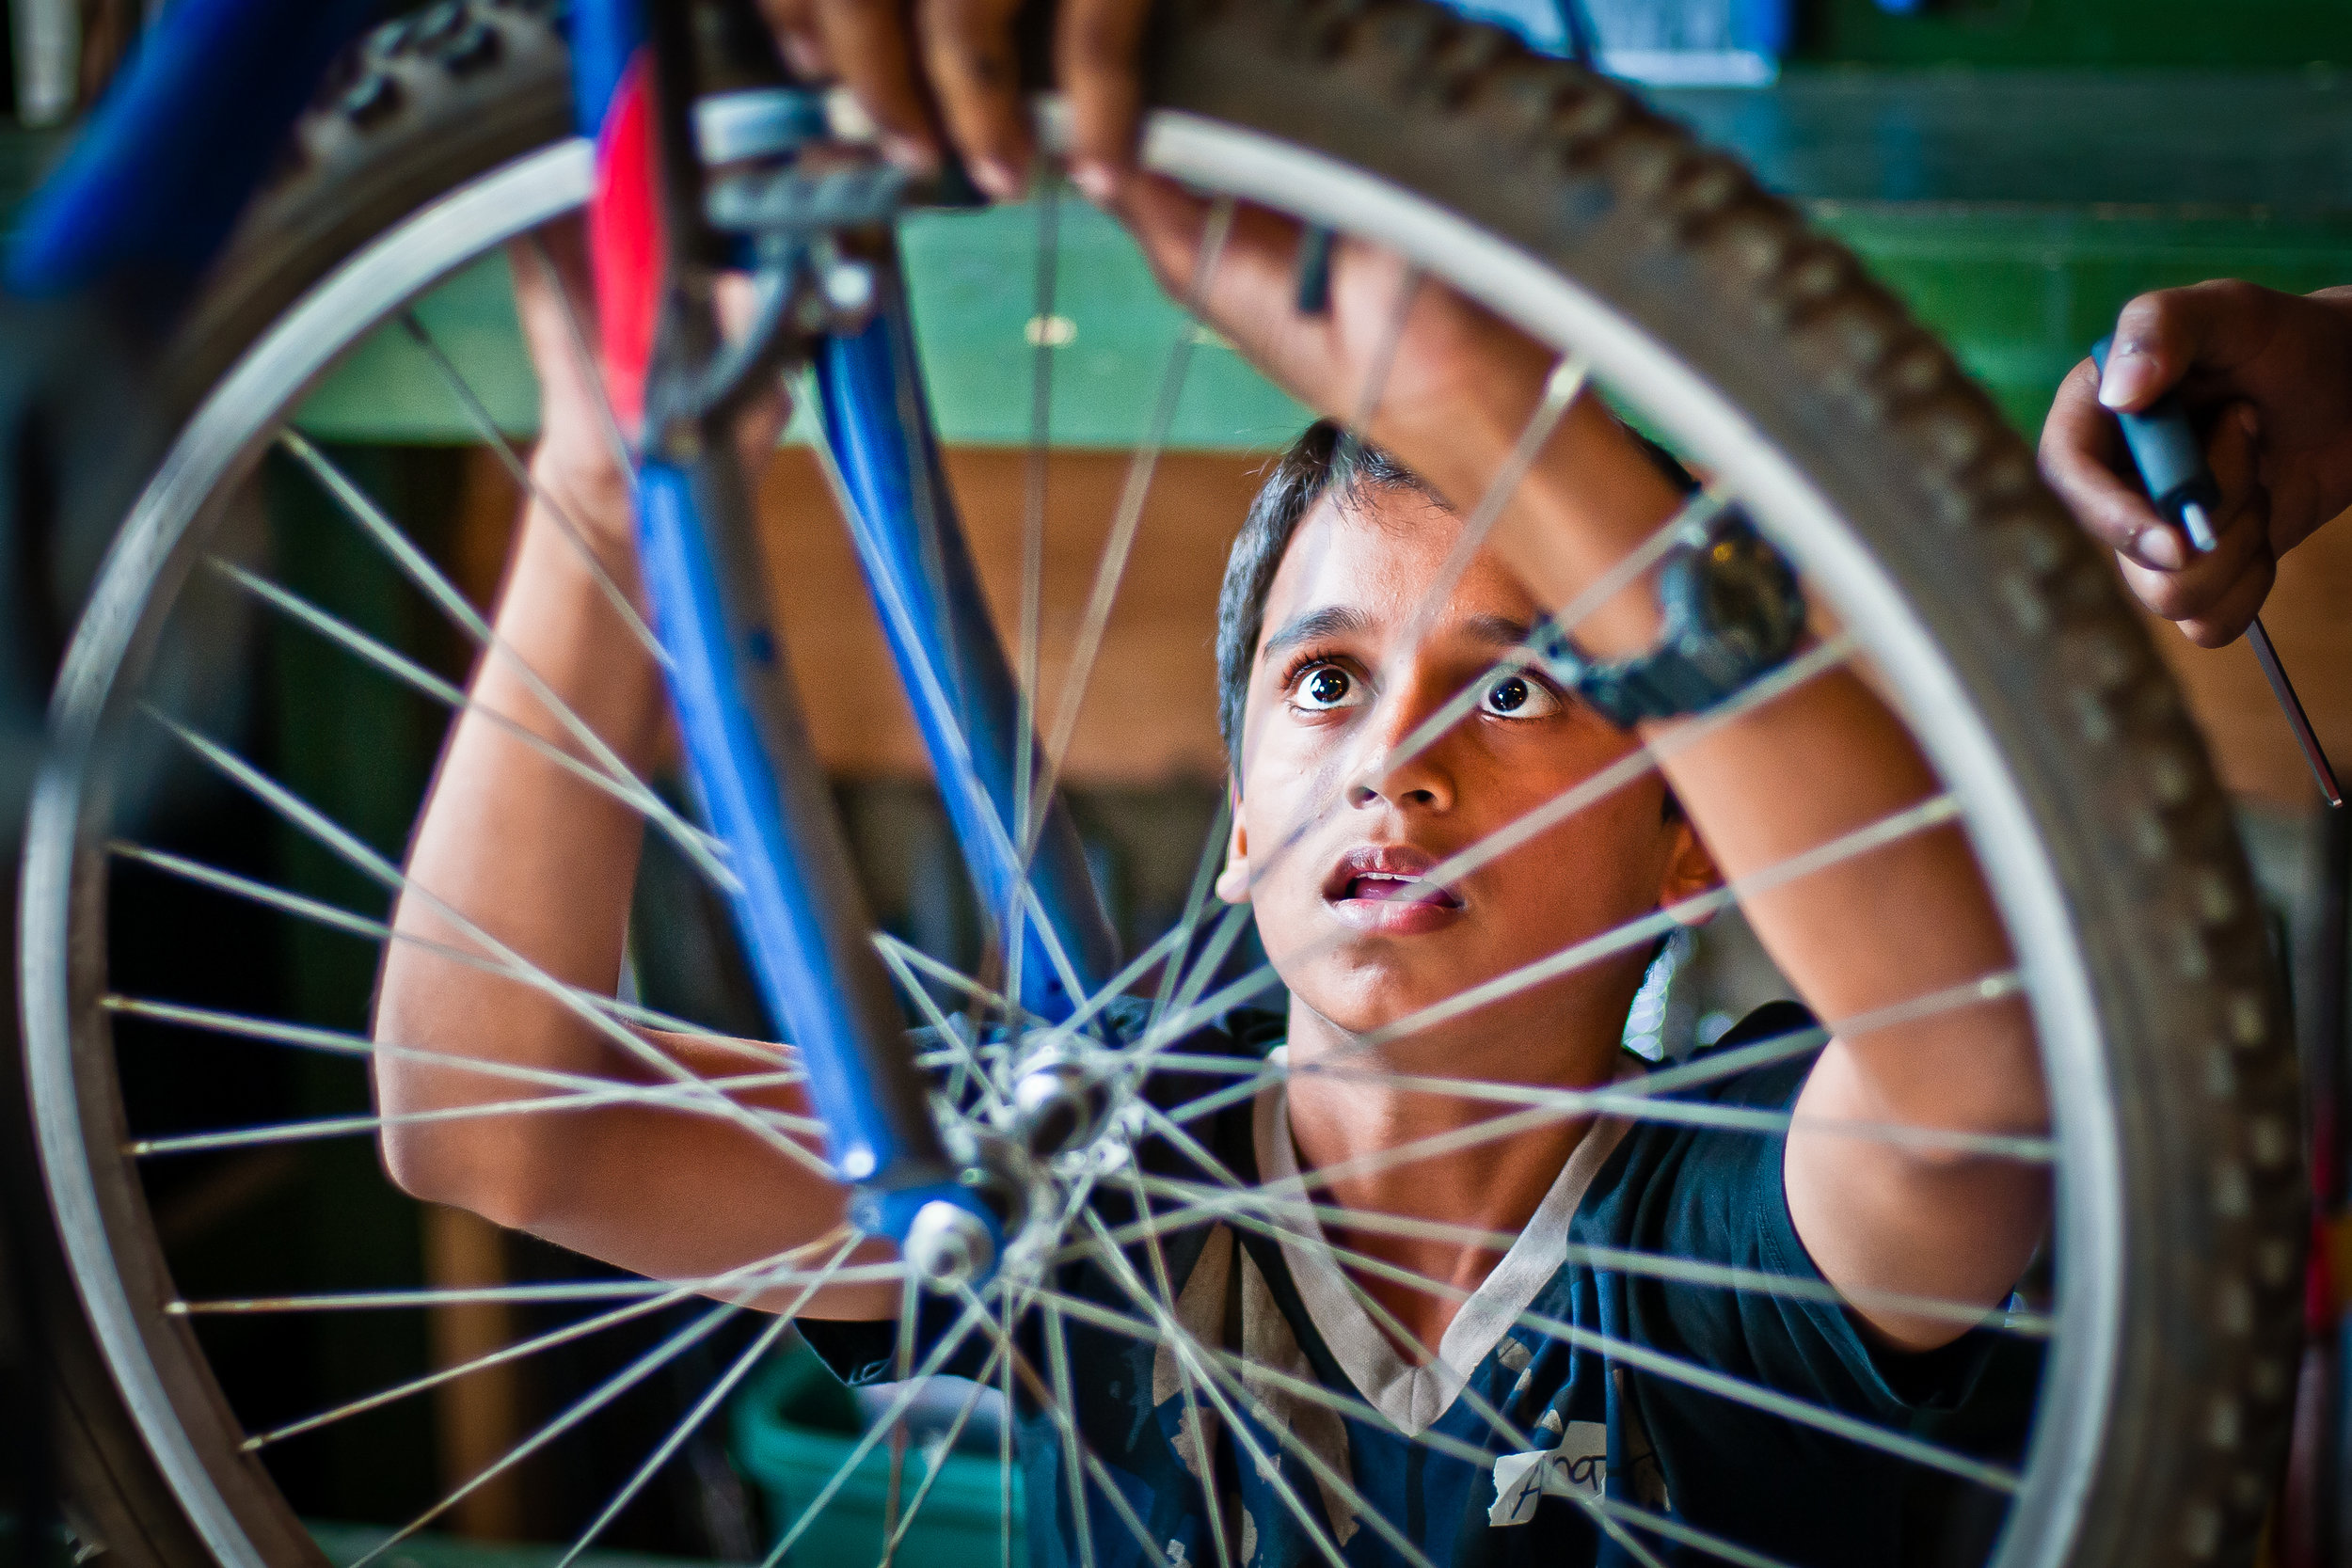 Participants in our Great Bike Recycle program may also receive training in bike maintenance.